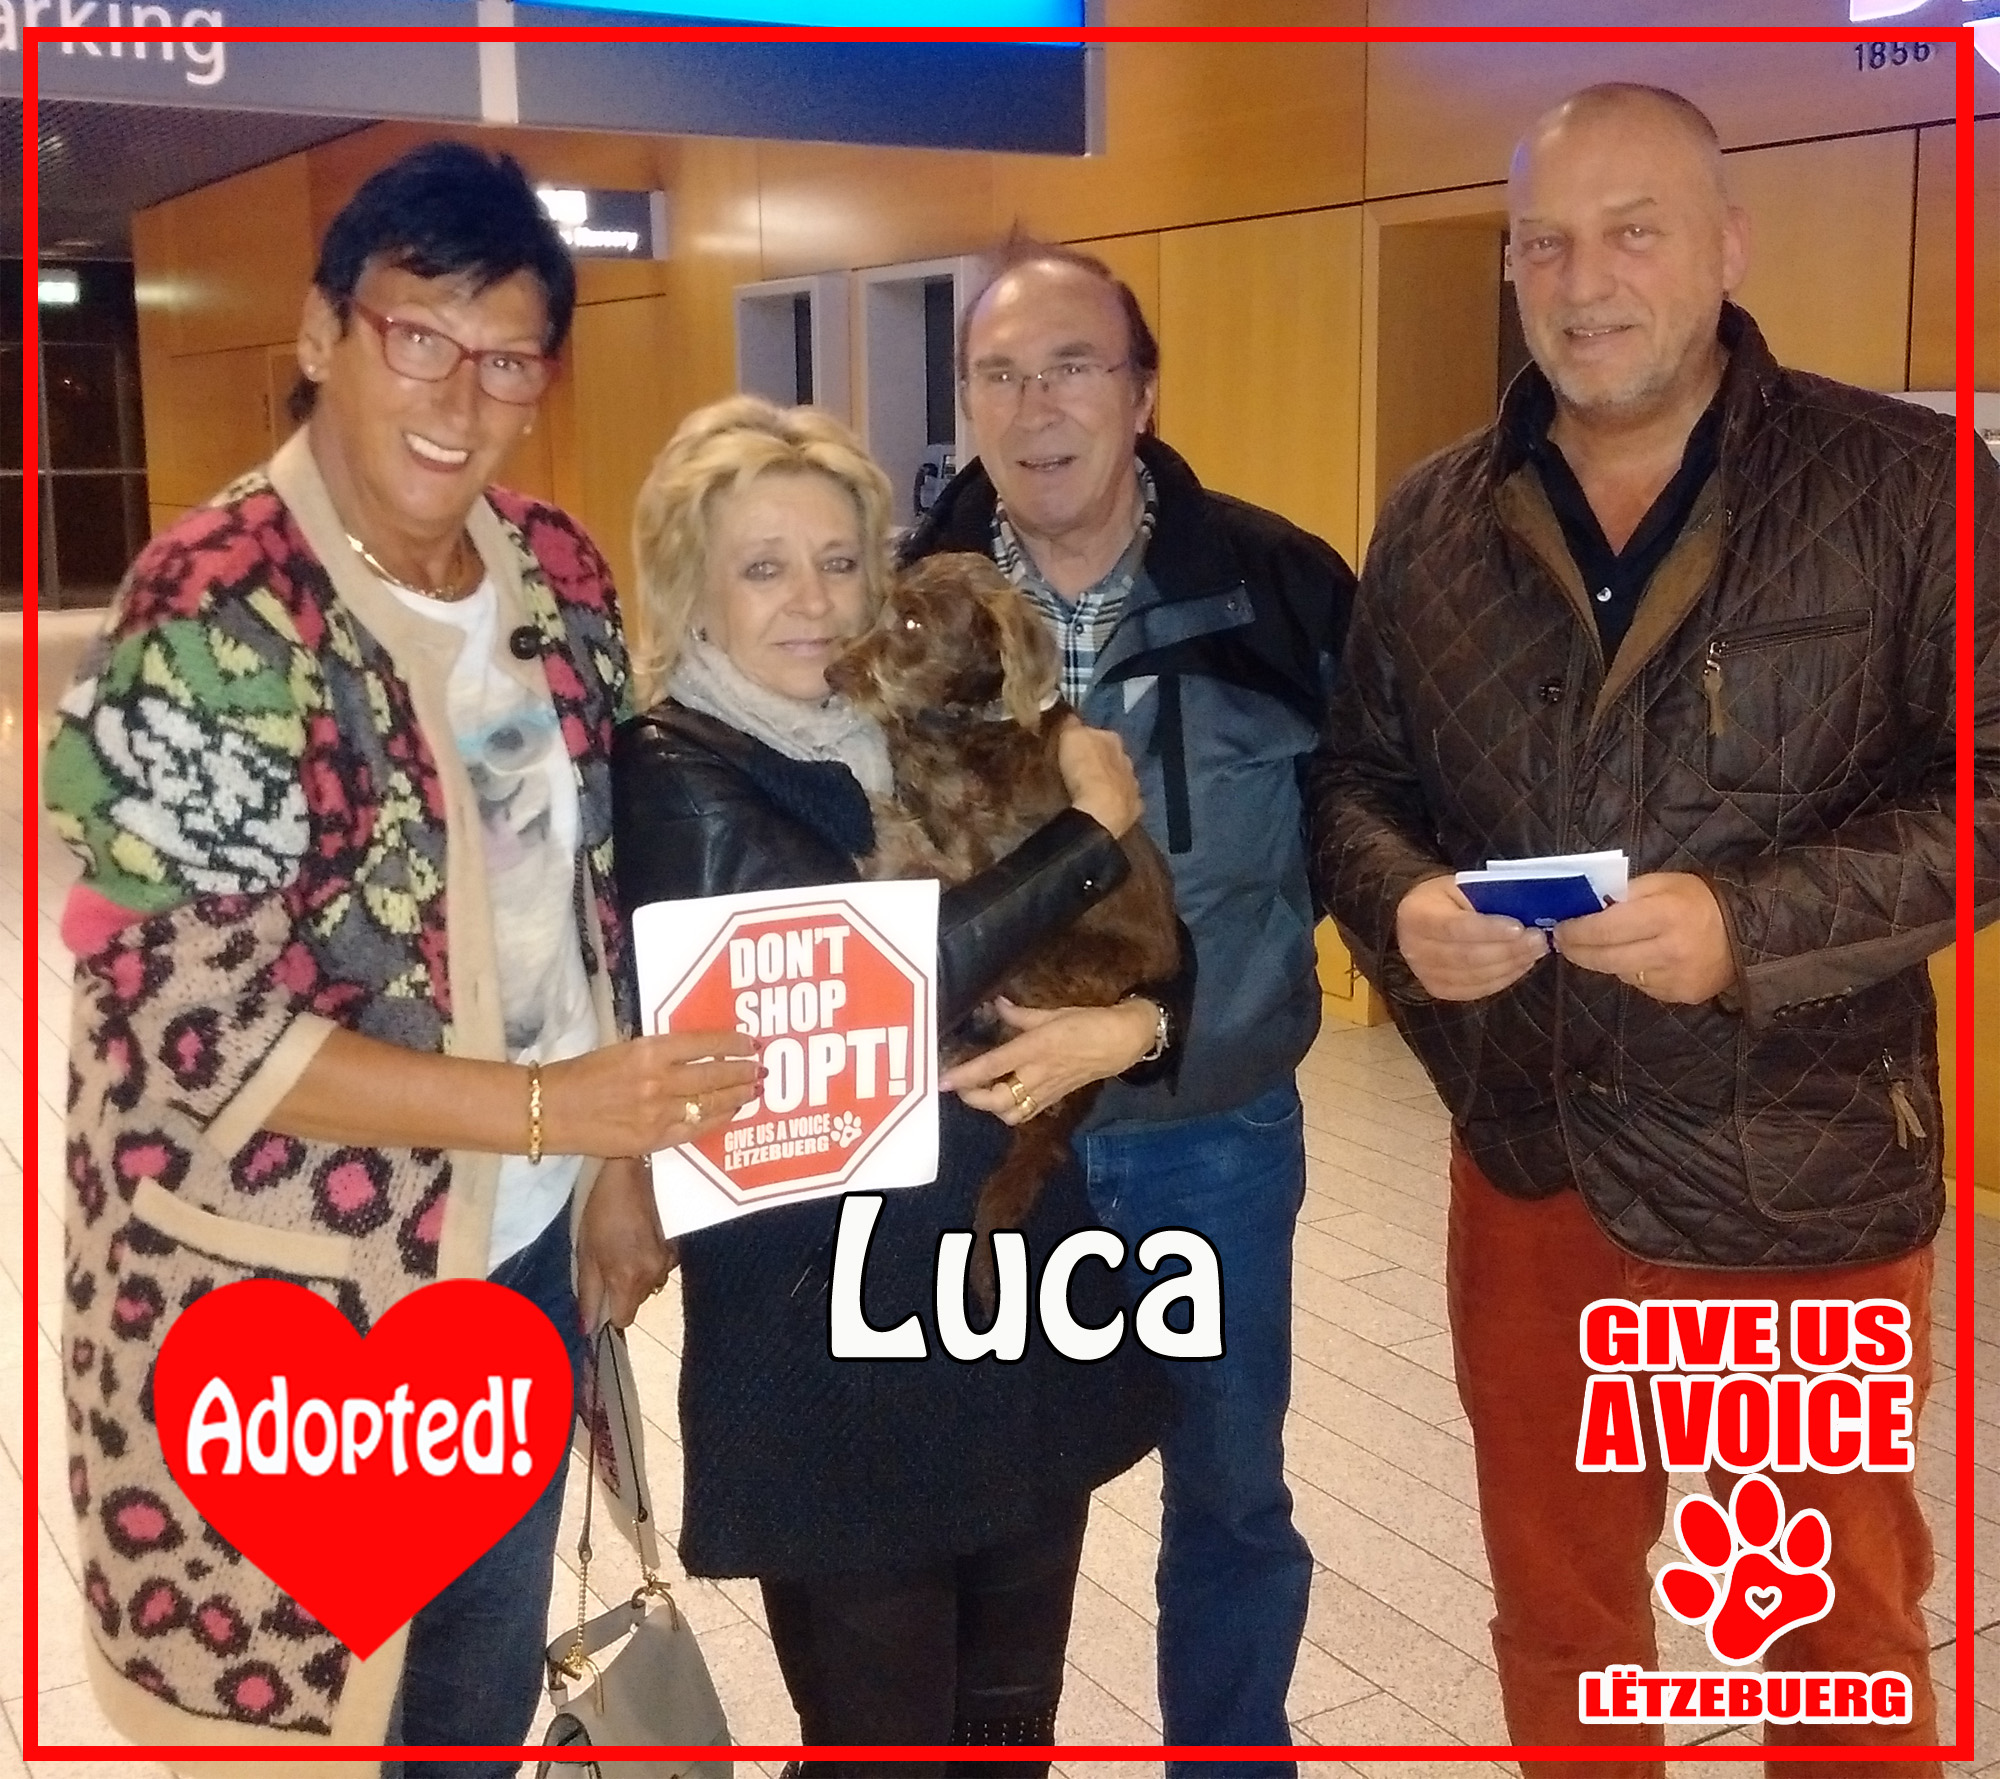 Luca adopted! copy